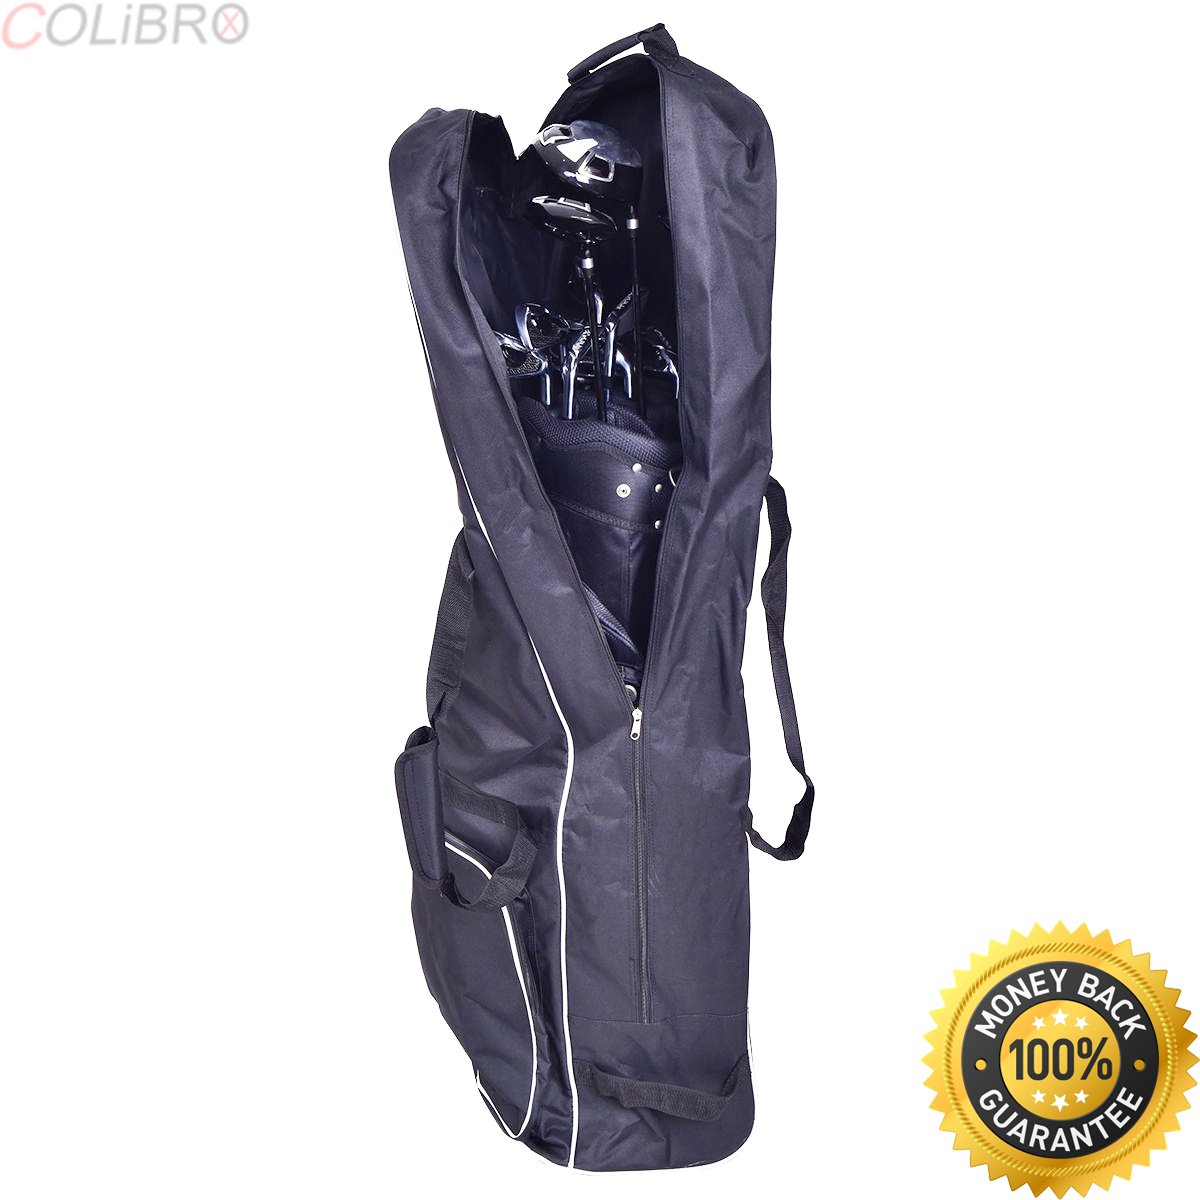 COLIBROX--Black Foldable Golf Bag Travel Cover with Wheel Lightweight Oxford. club champ golf hard travel case. club champ golf bag travel cover. golf bag rain hood black. golf travel hard case.